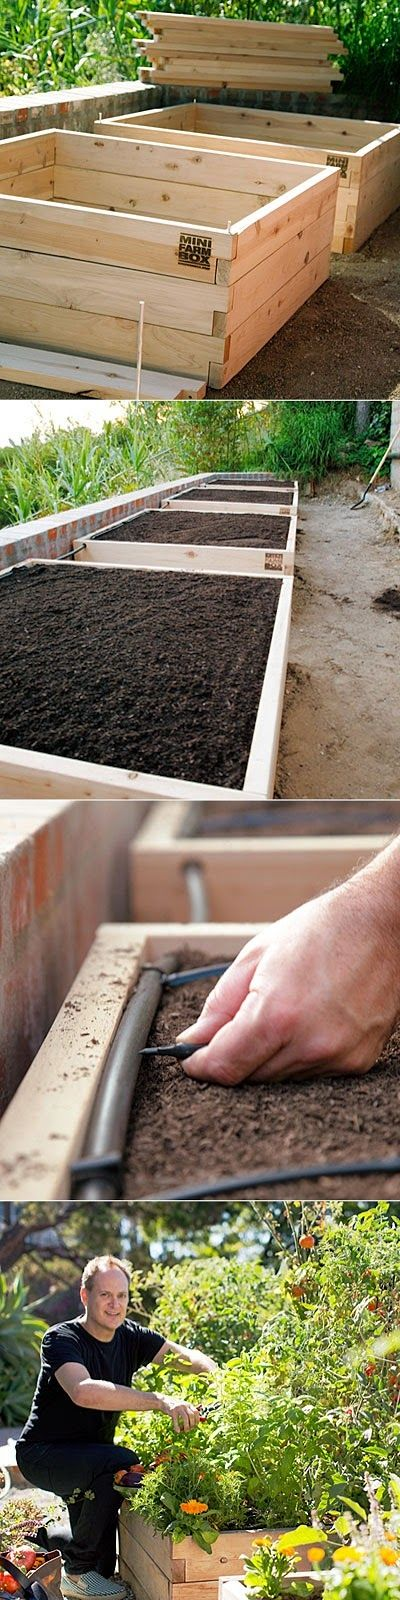 Alternative Gardning: Raised-bed vegetable garden